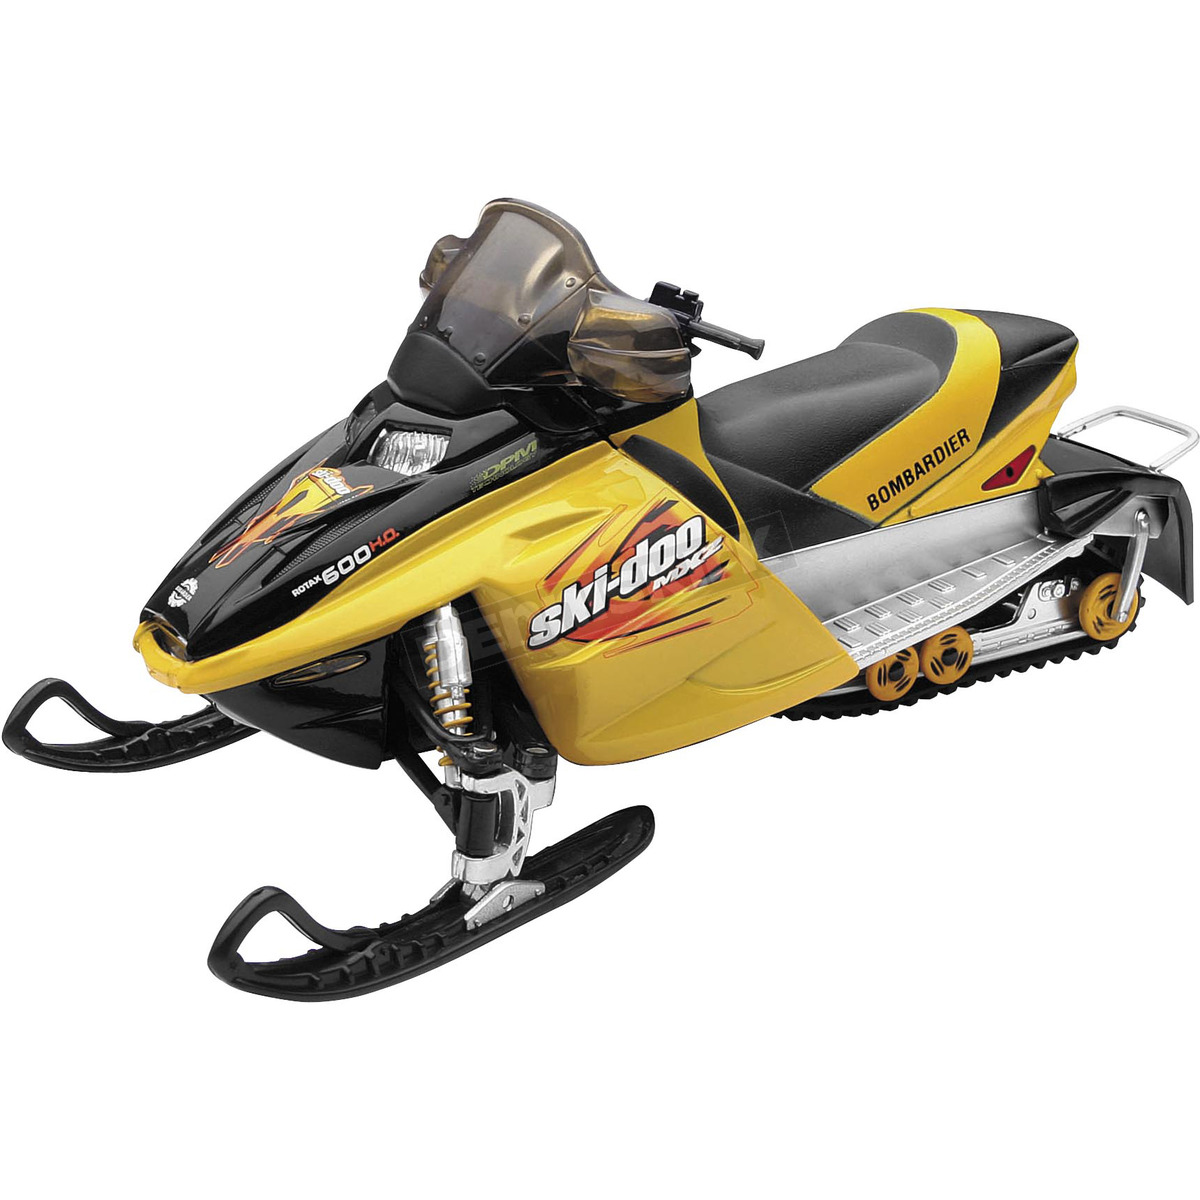 ski doo neu as - photo #7